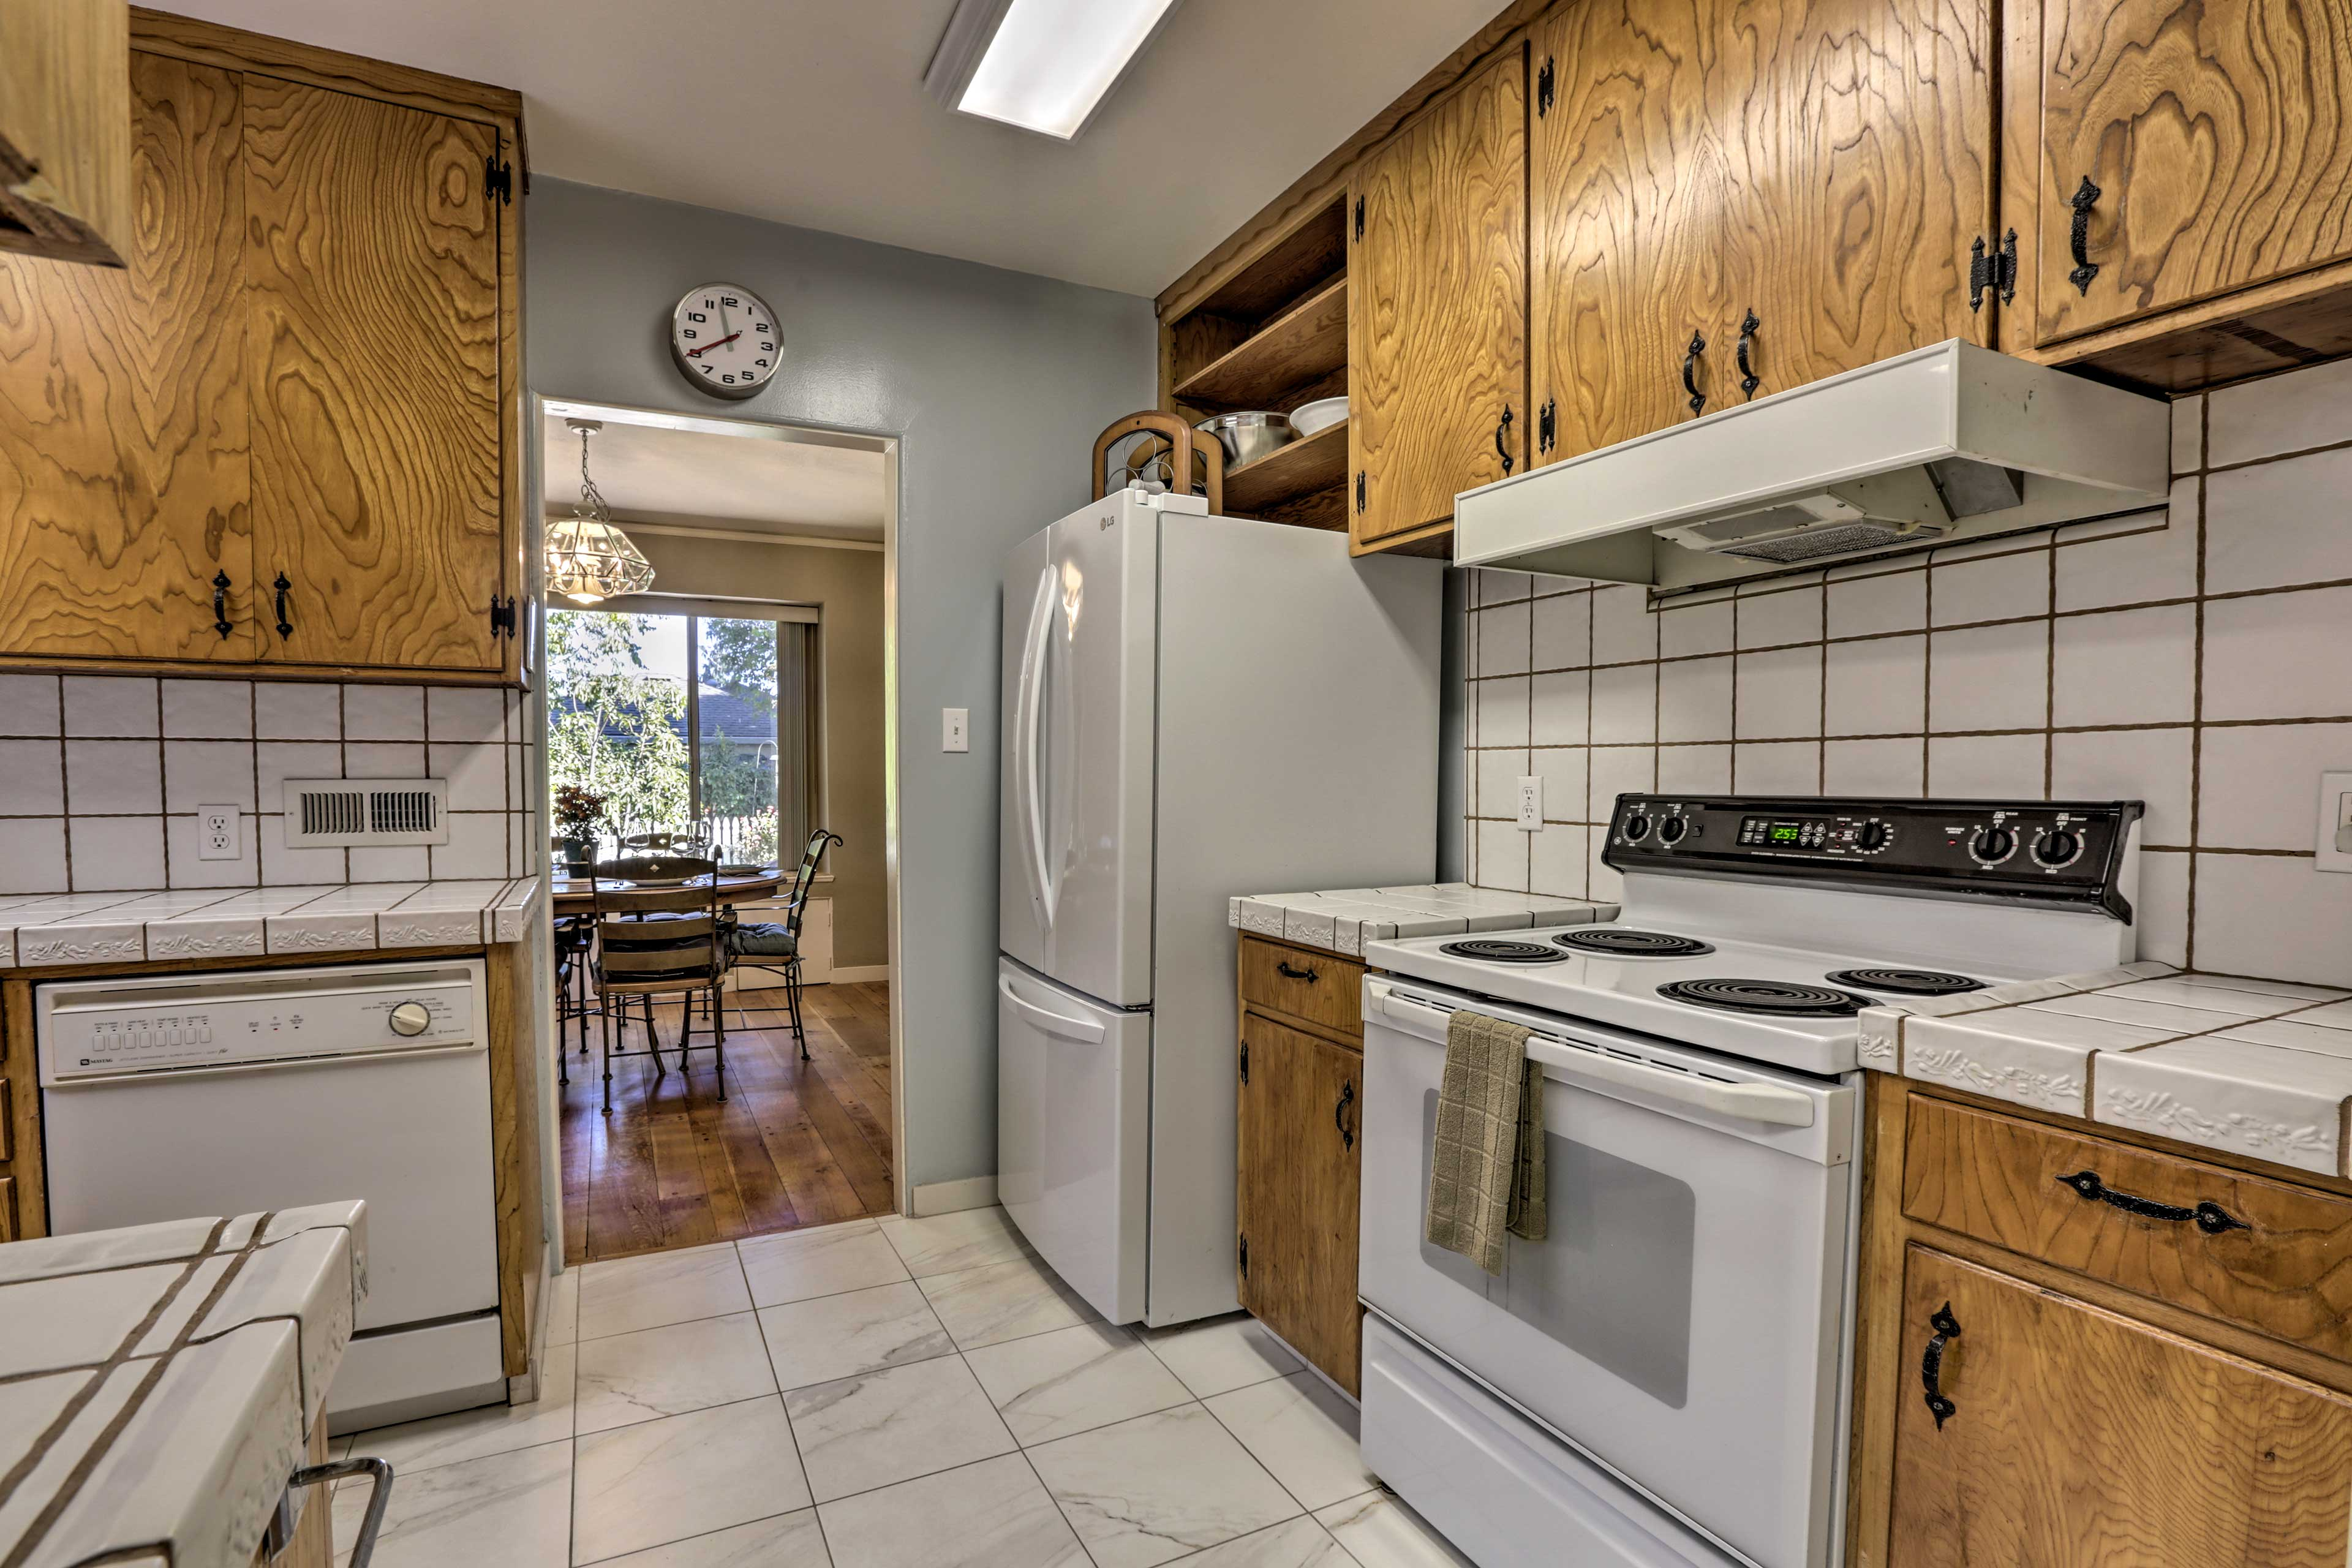 You'll have all the appliances, dishware & utensils that you need!